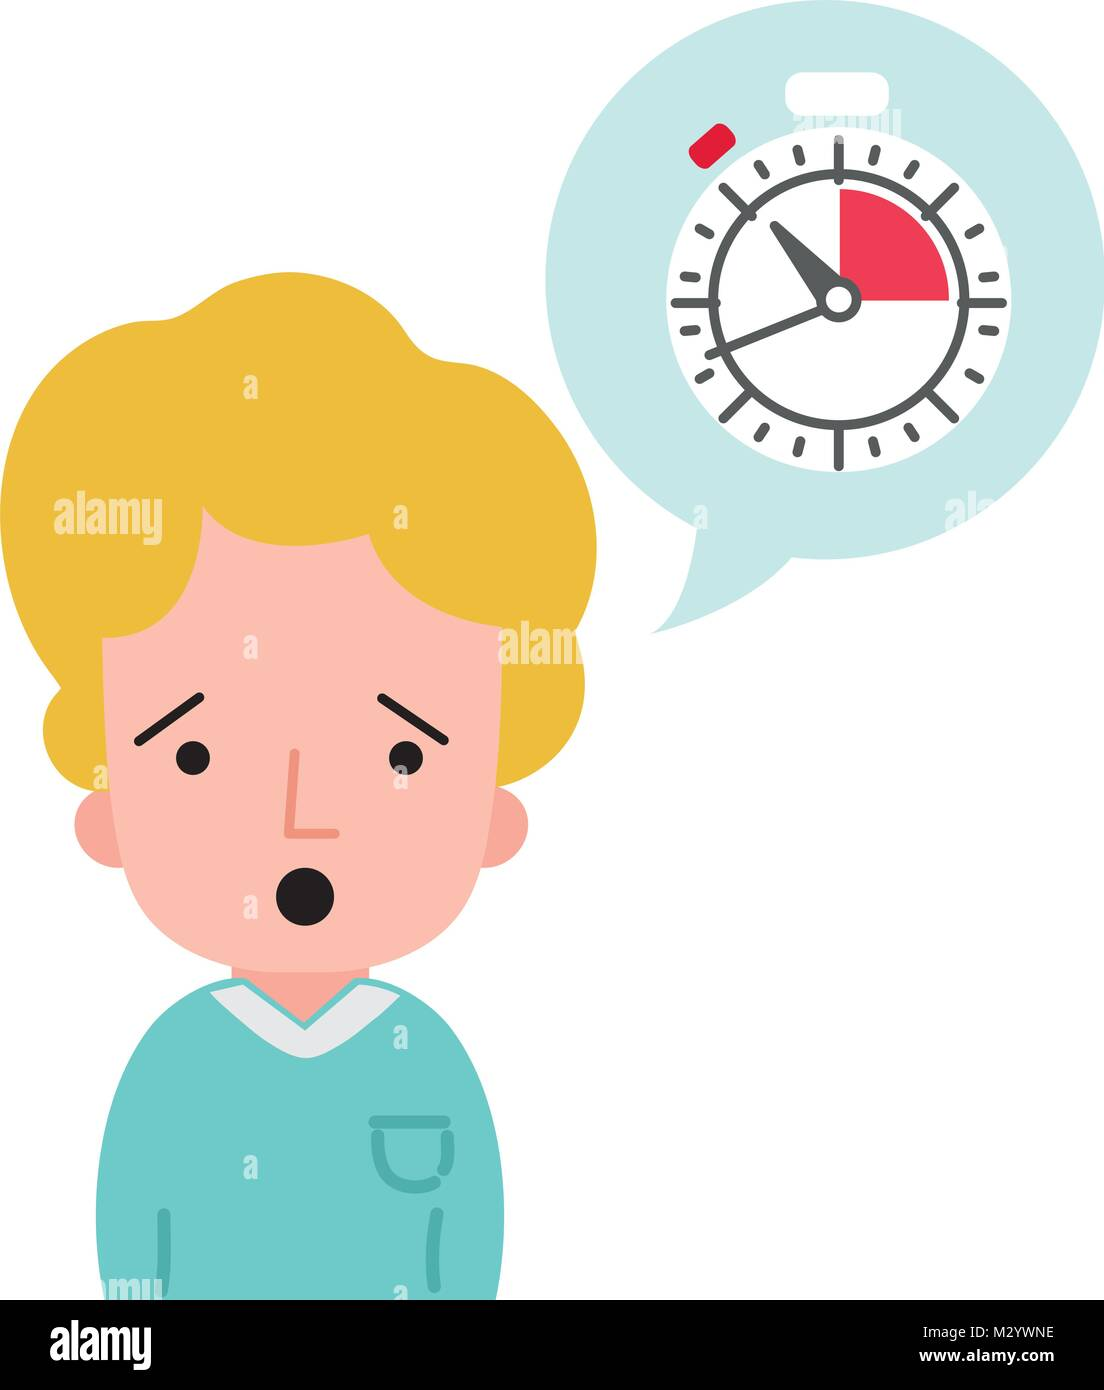 colorful man with t-shirt and choronometer inside chat bubble - Stock Image